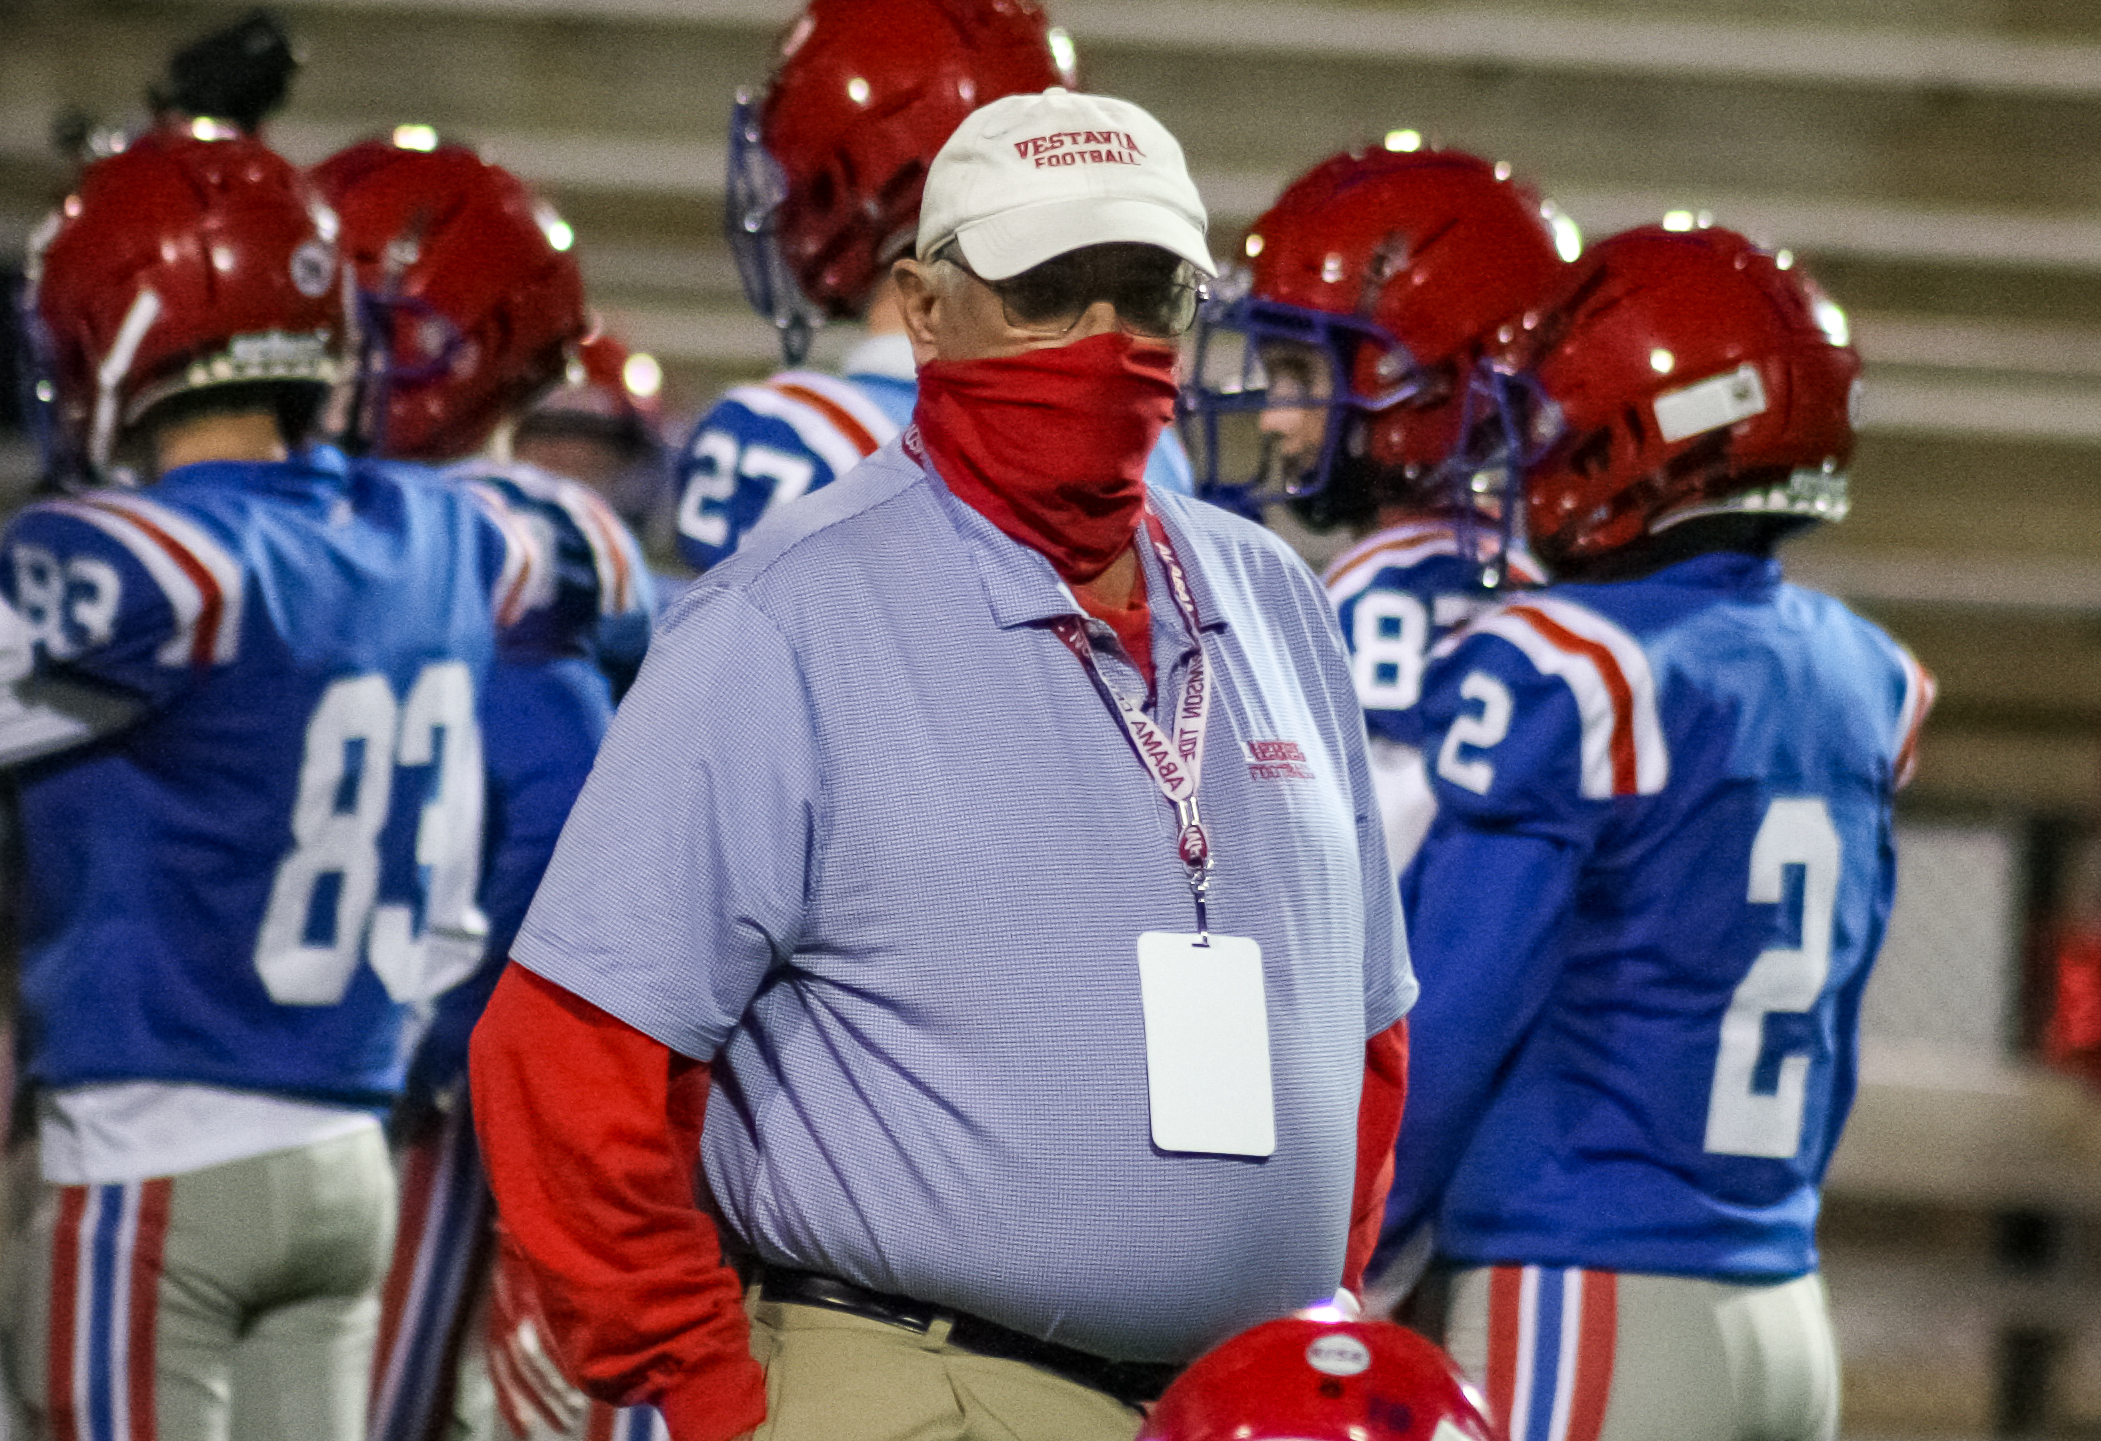 Vestavia caps Buddy Anderson's career with a 52-27 win over Shades Valley